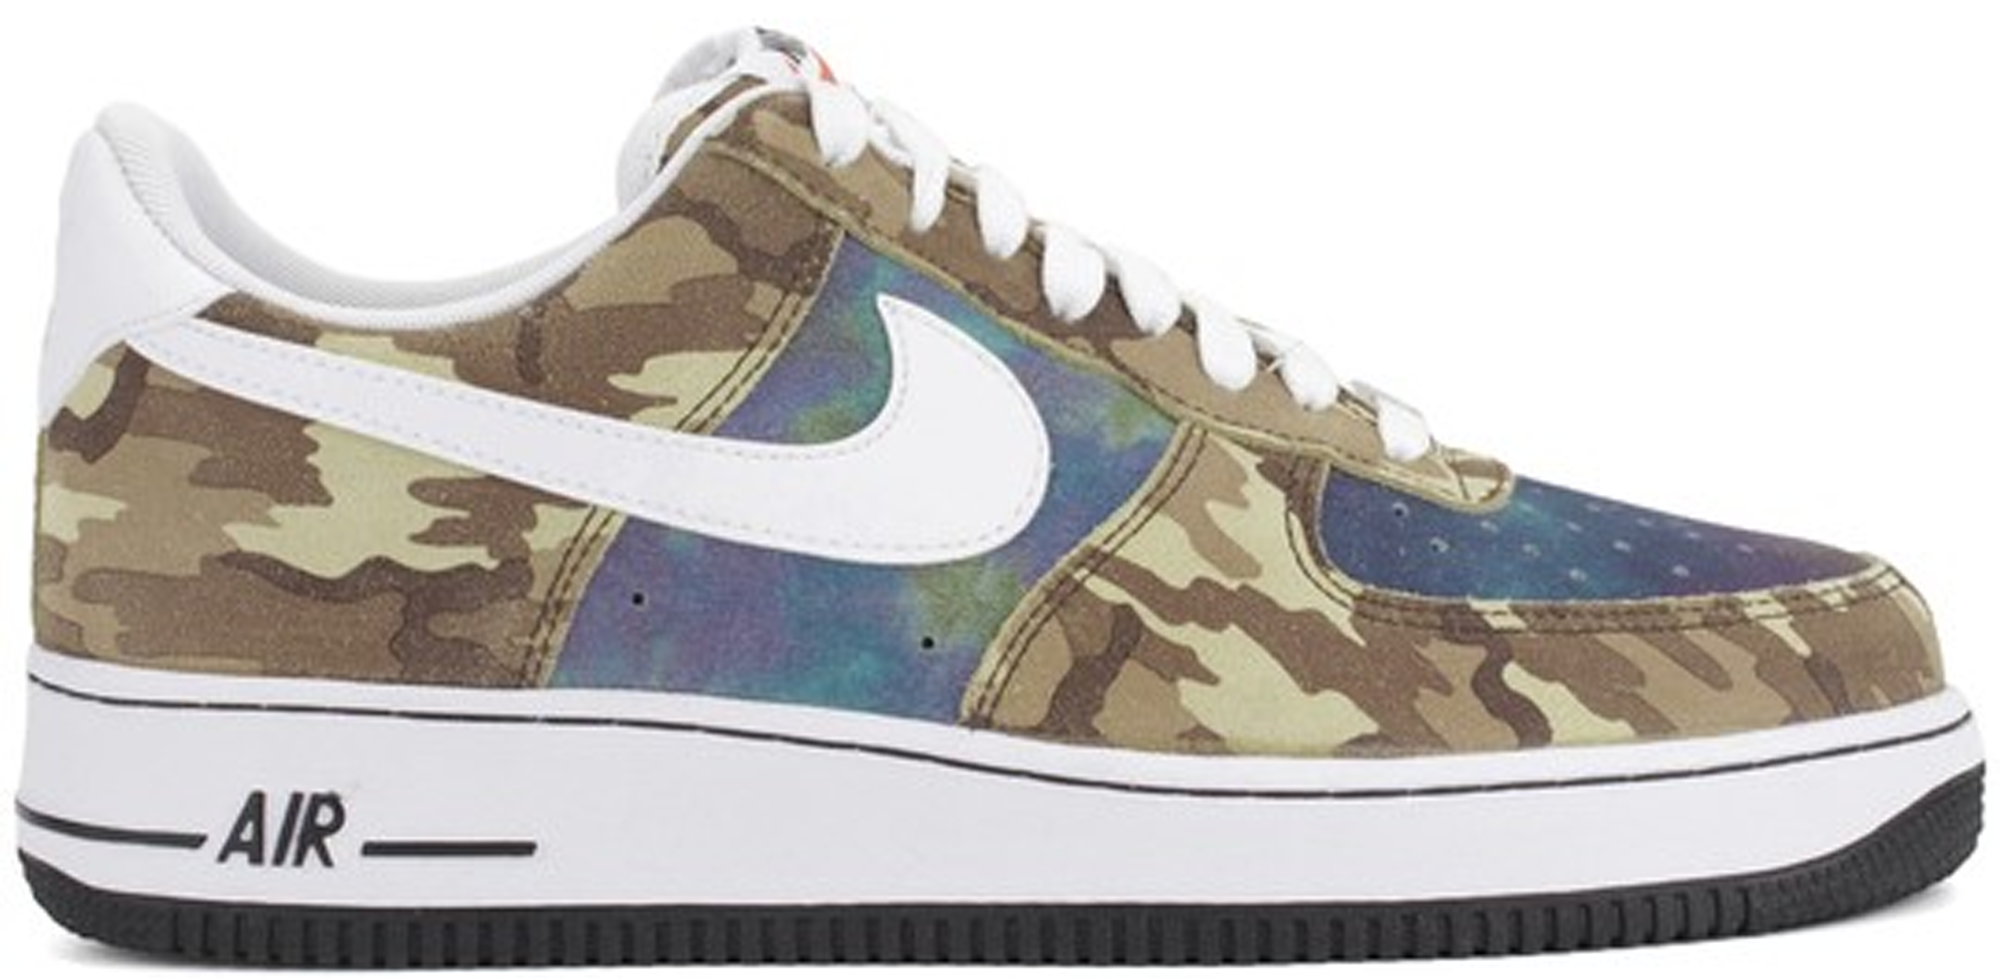 Nike Air Force 1 Low LV8 Camo Green